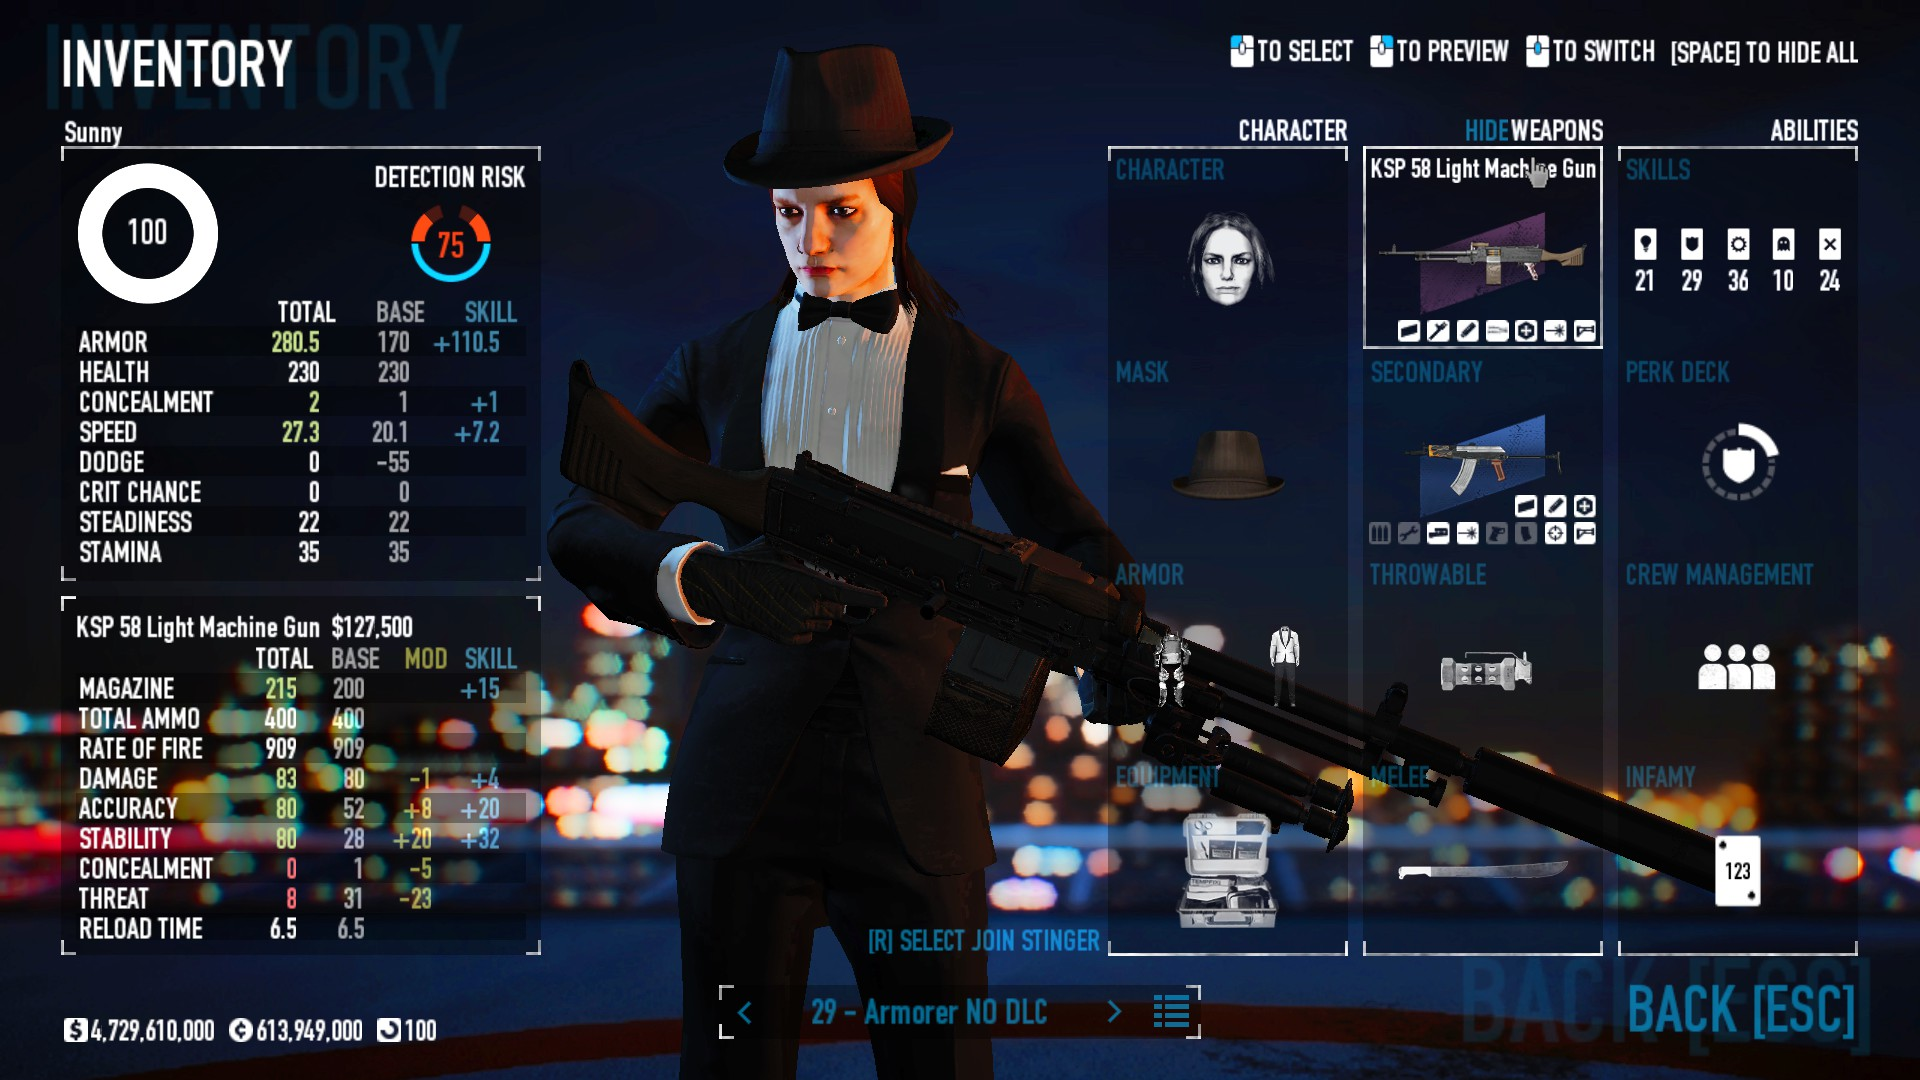 PAYDAY 2 - DSOD No DLC Build + Weapons Attachments & Class - Inventory and Weapons - BE3D500